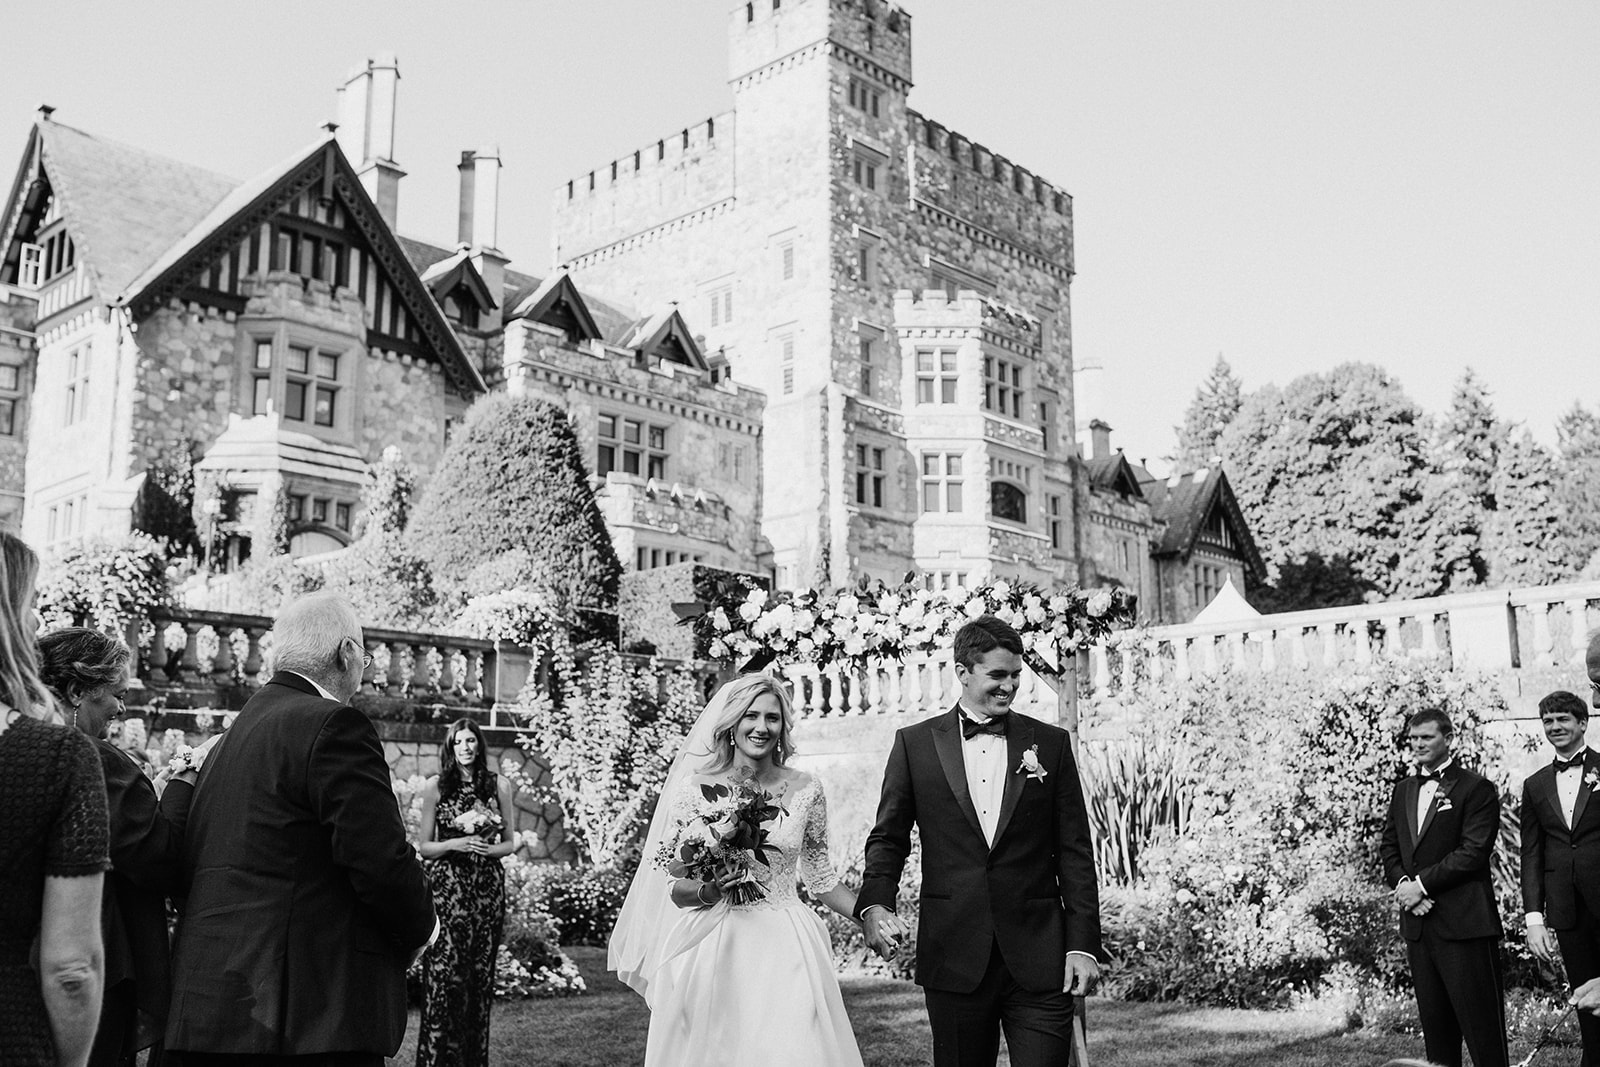 Hatley Castle Wedding - Victoria Wedding Photographer Kim Jay-41.jpg